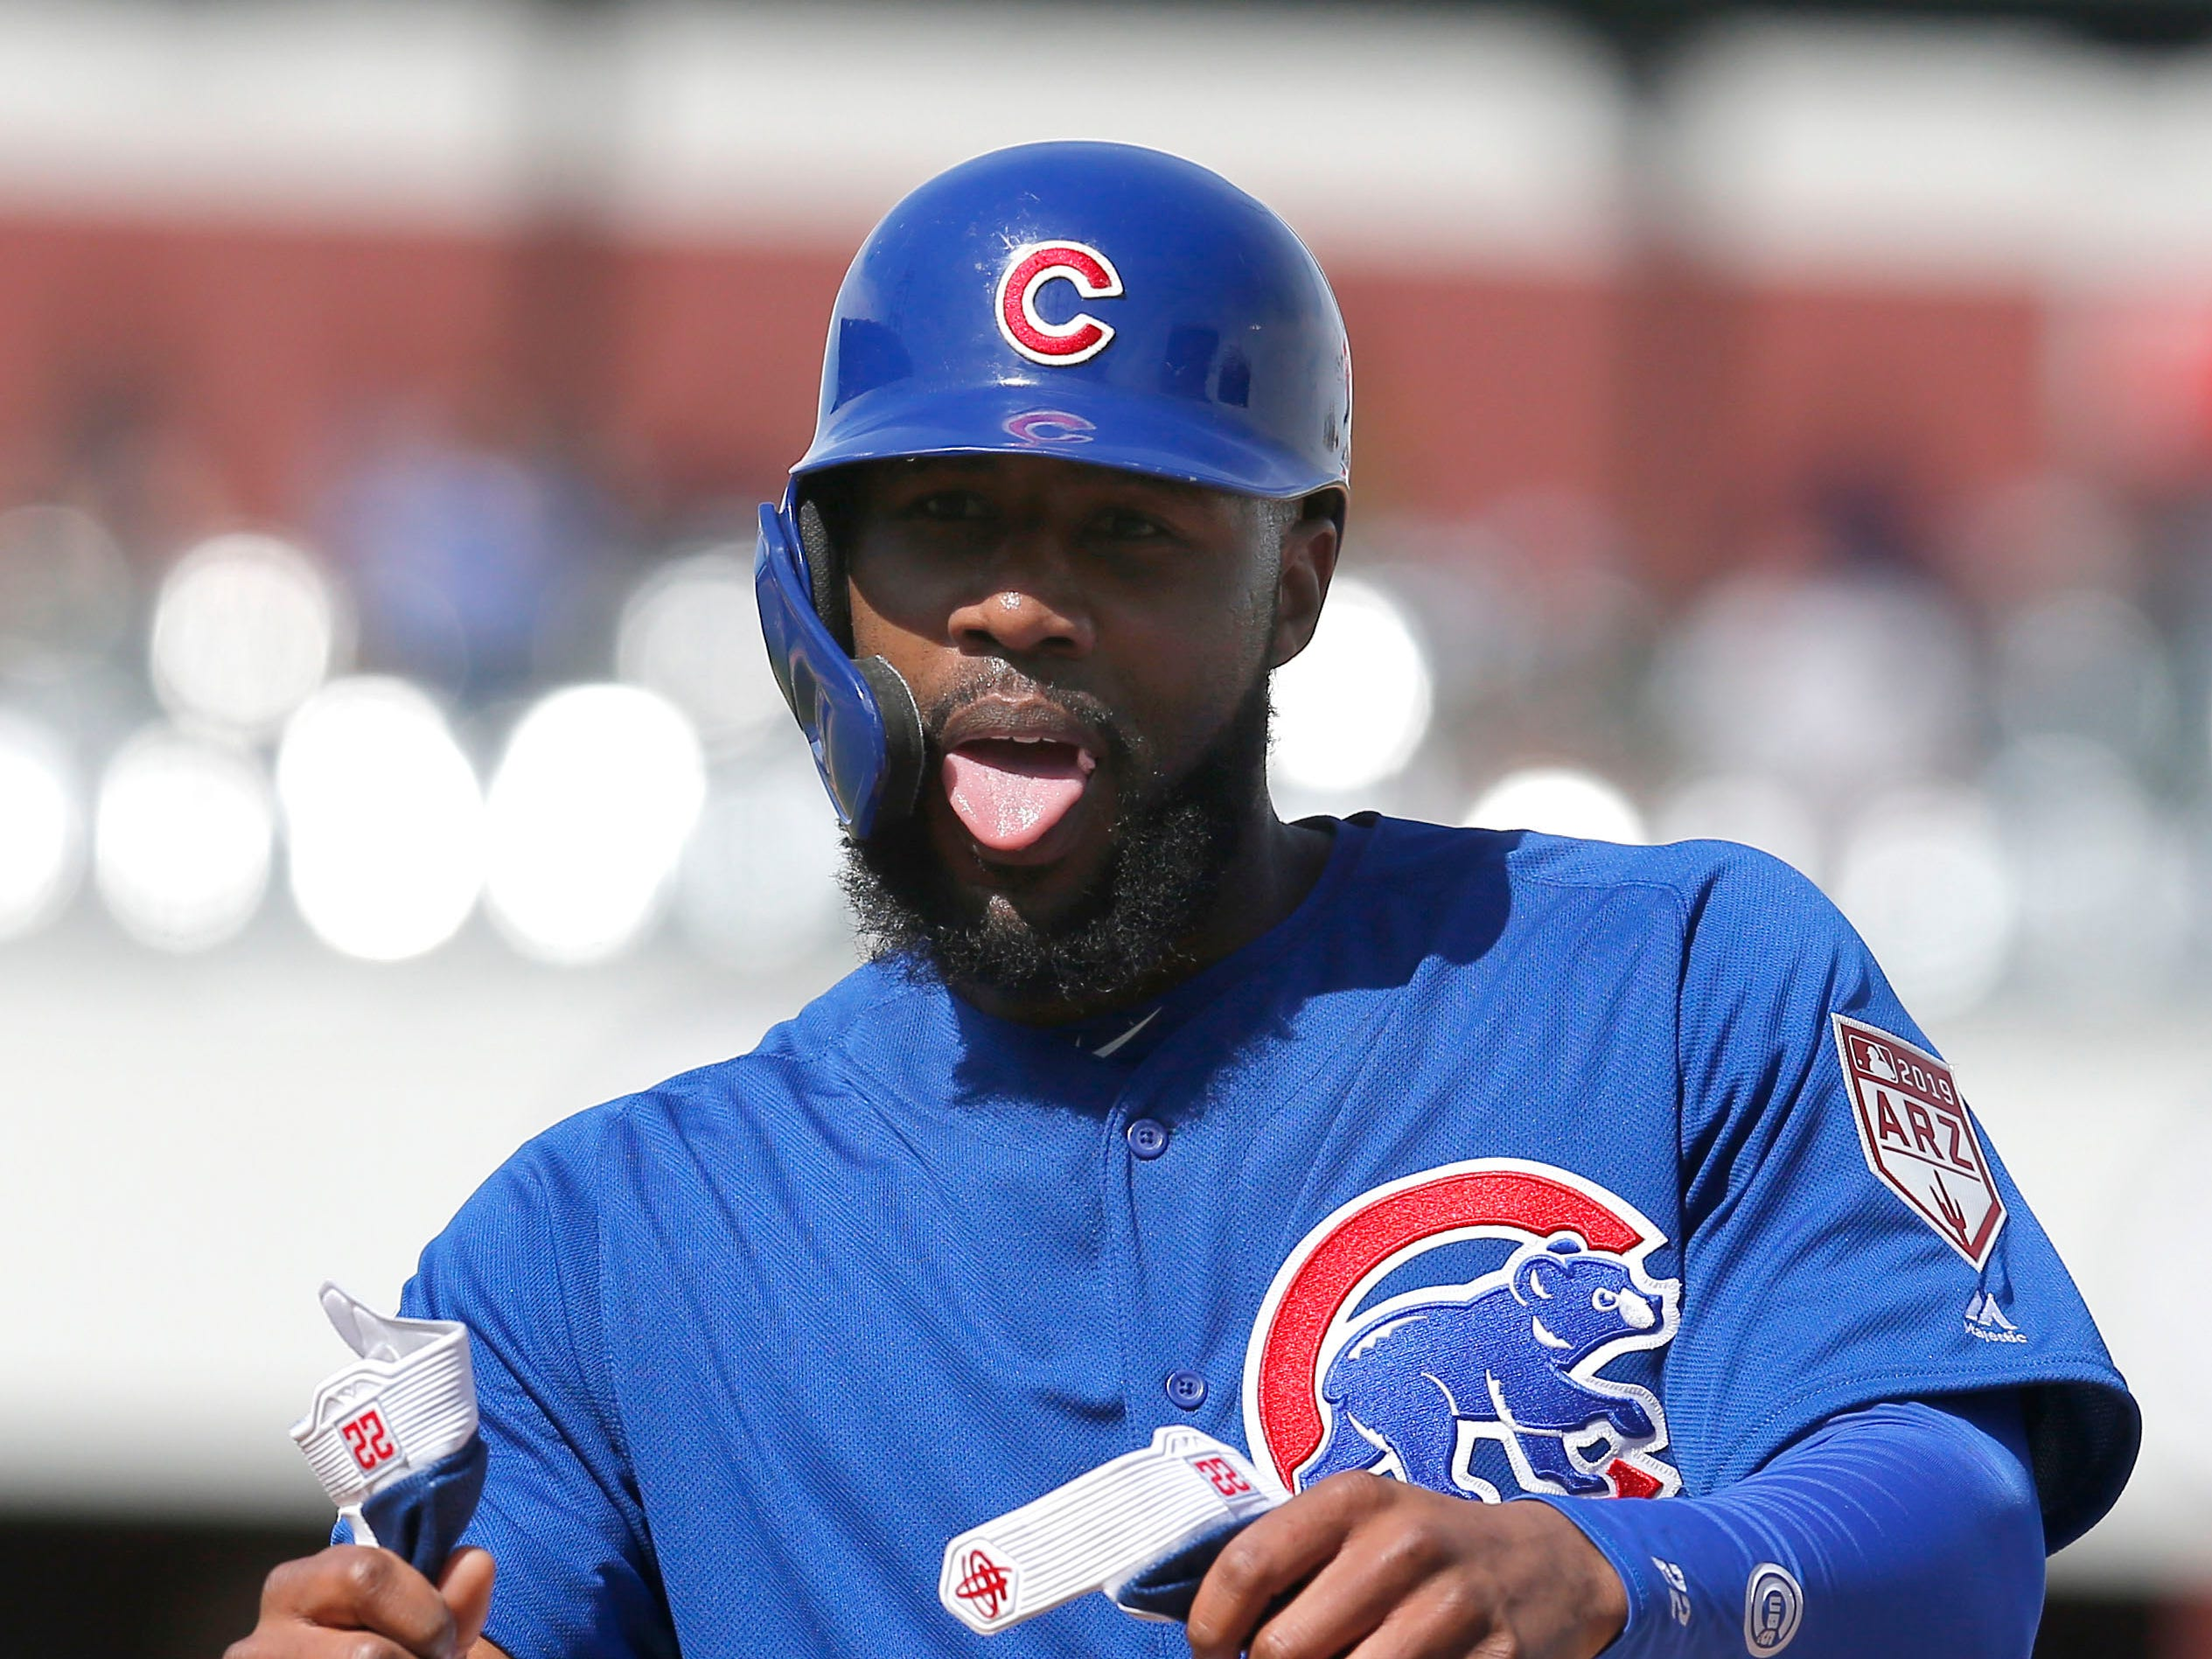 Feb. 25: Cubs right fielder Jason Heyward reacts after running back to first base on a fly ball out.